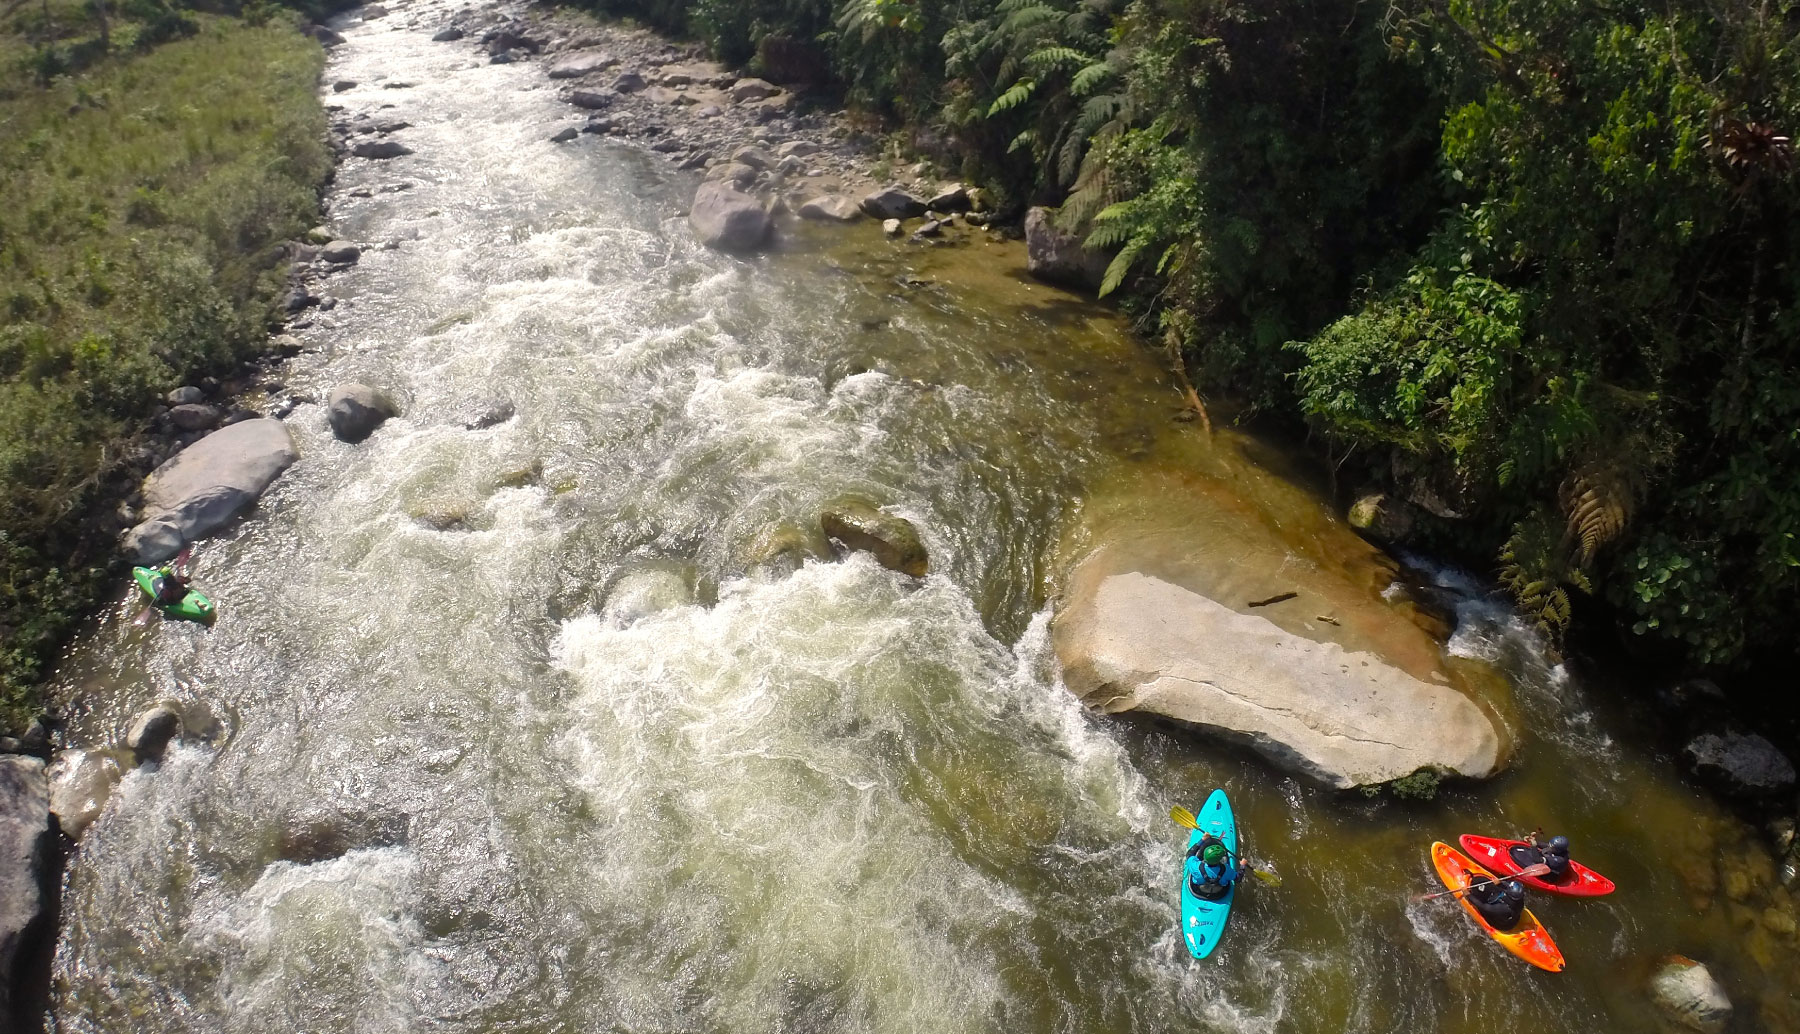 whitewater kayak ecuador | kayak guided trip south america